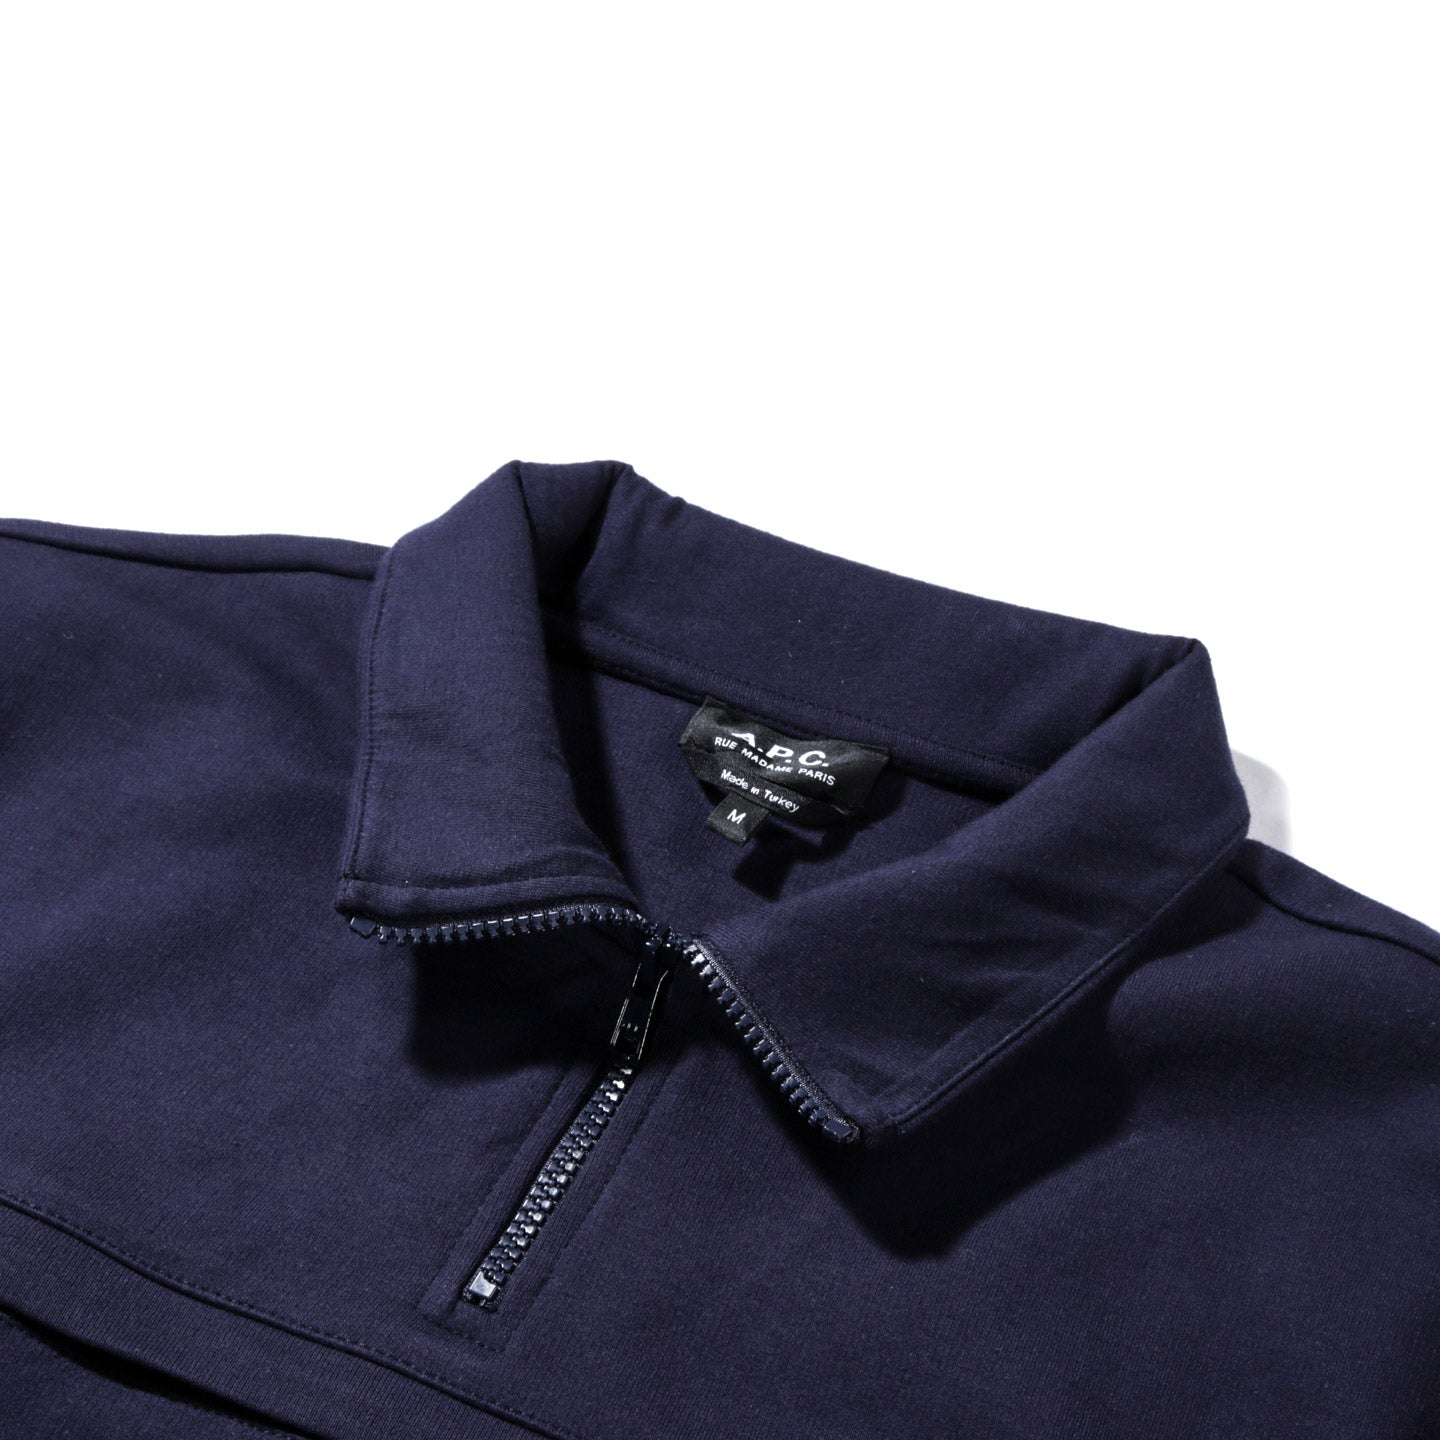 A.P.C. BELGRADE SWEATSHIRT DARK NAVY